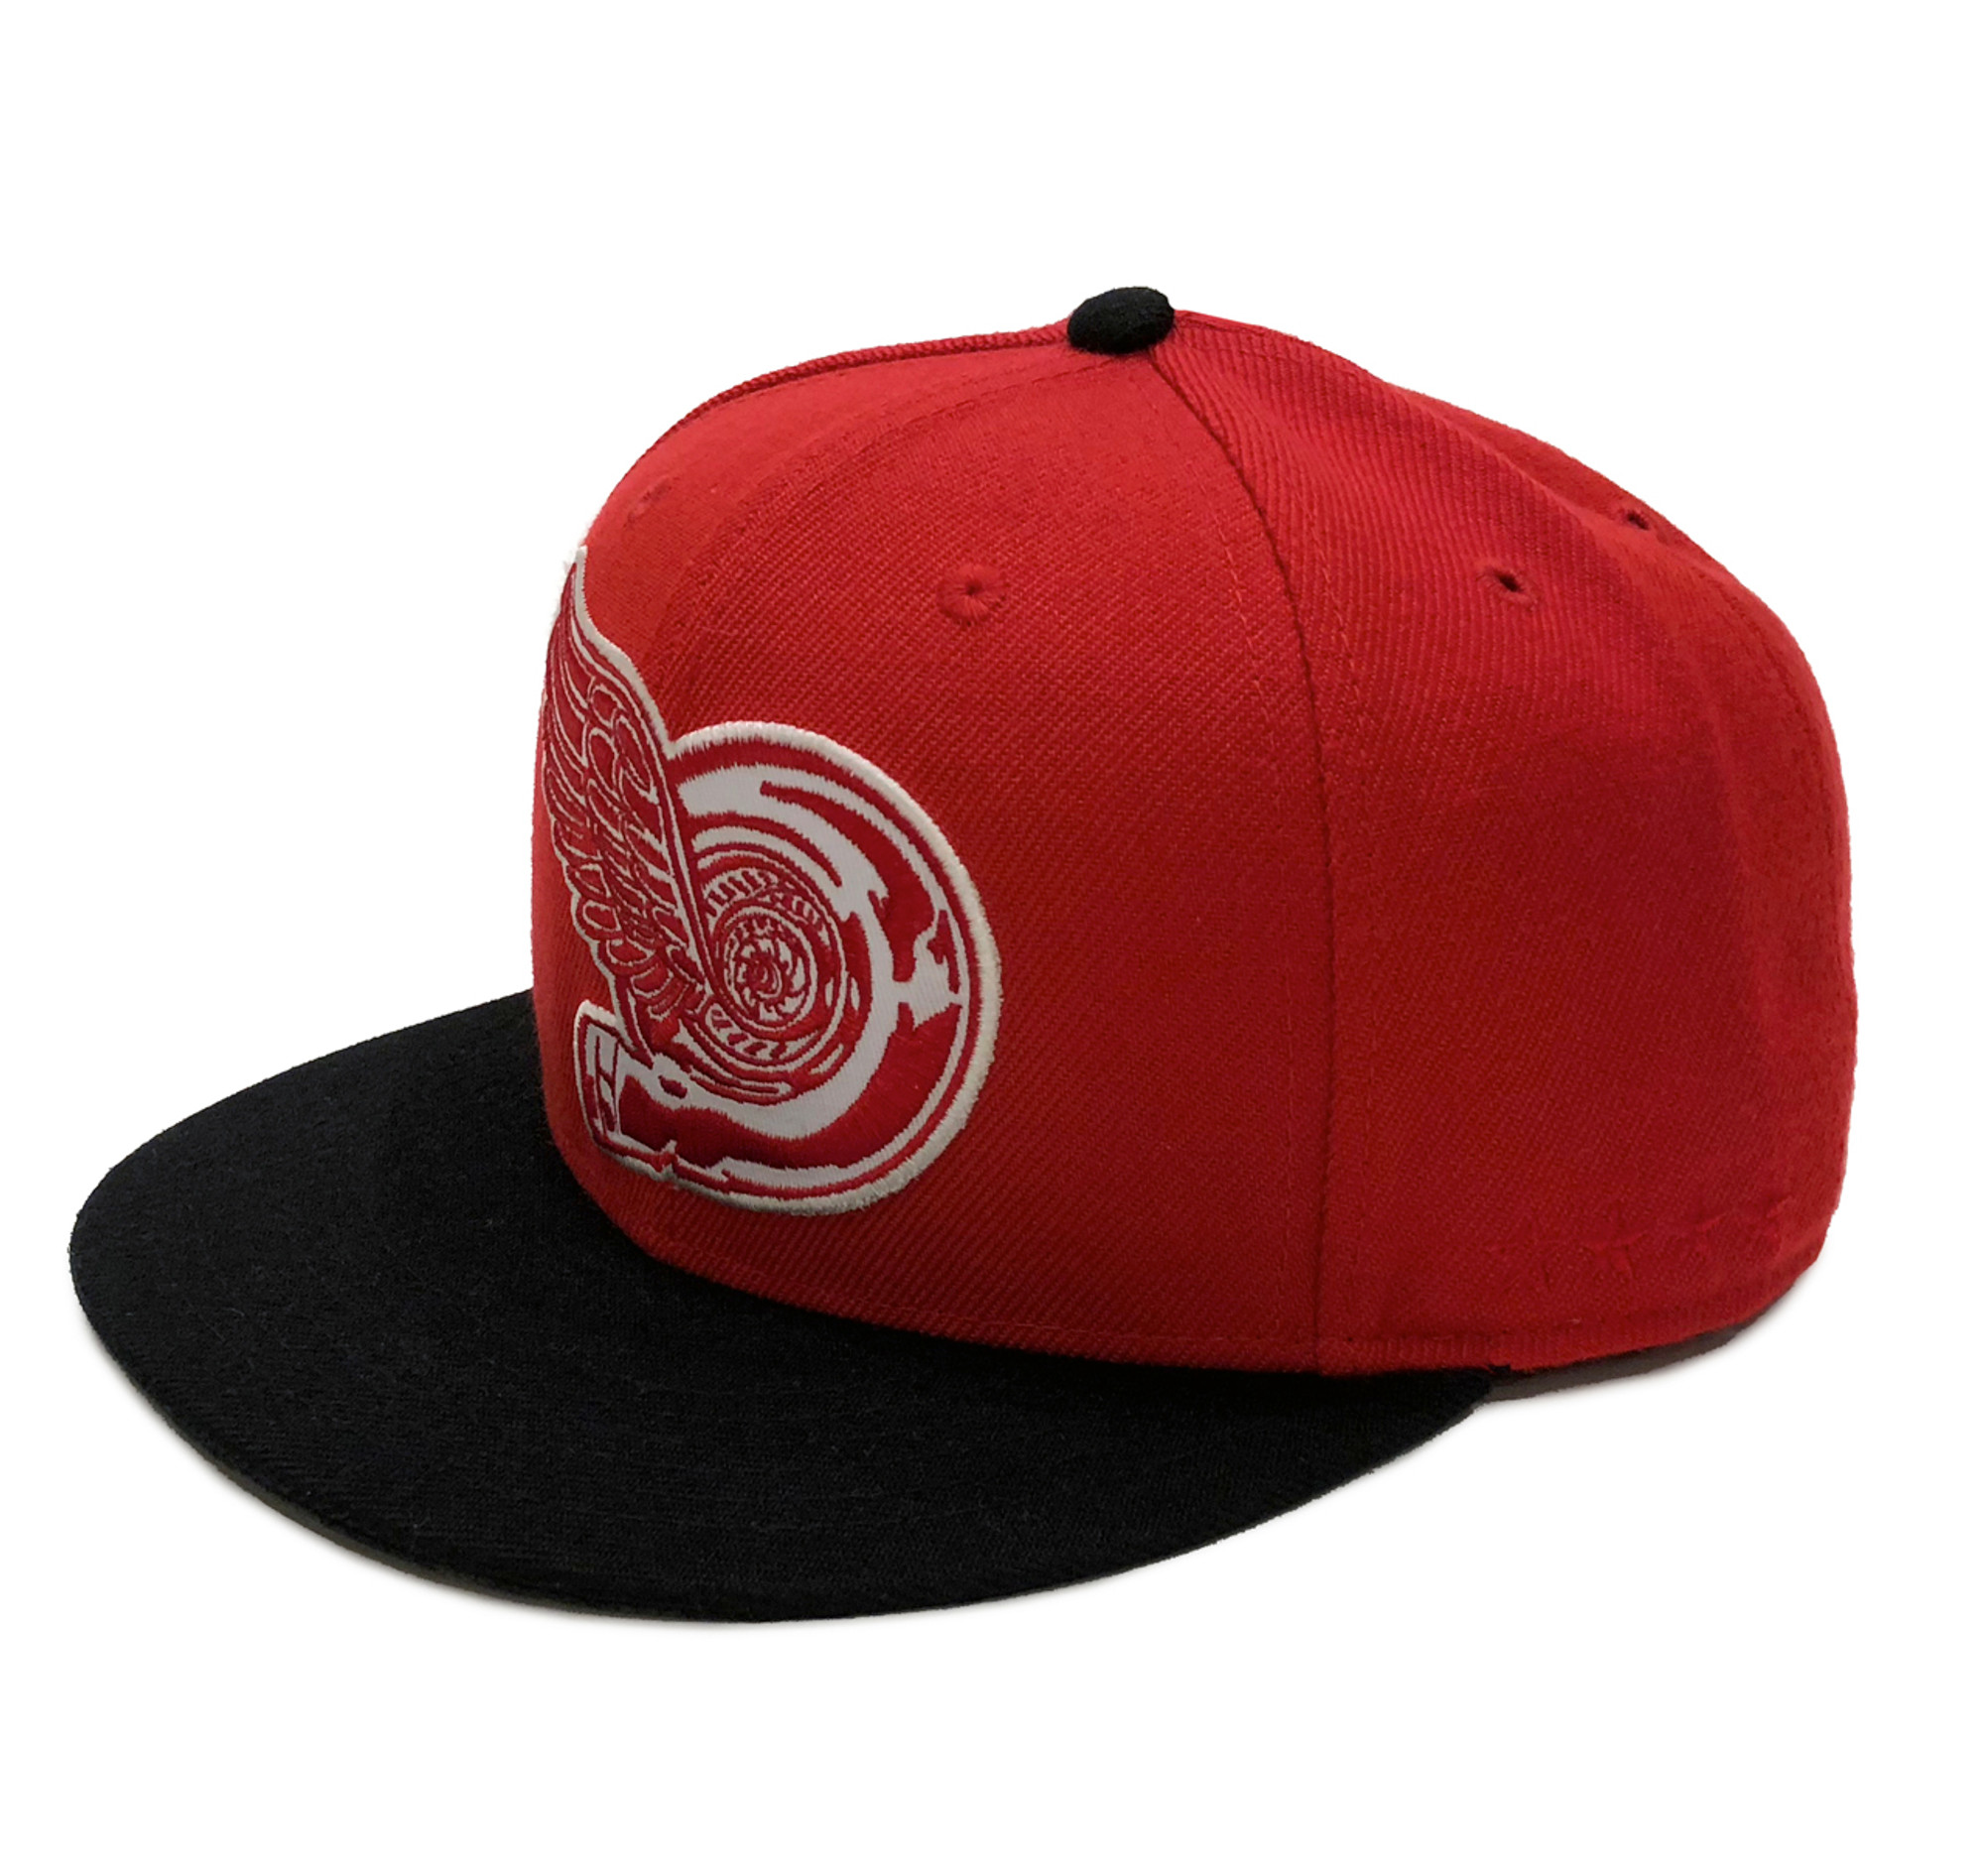 eaa18229847b96 Turbo Wing Fitted Hat | Red/Black - Eat Sleep Race - Racing ...